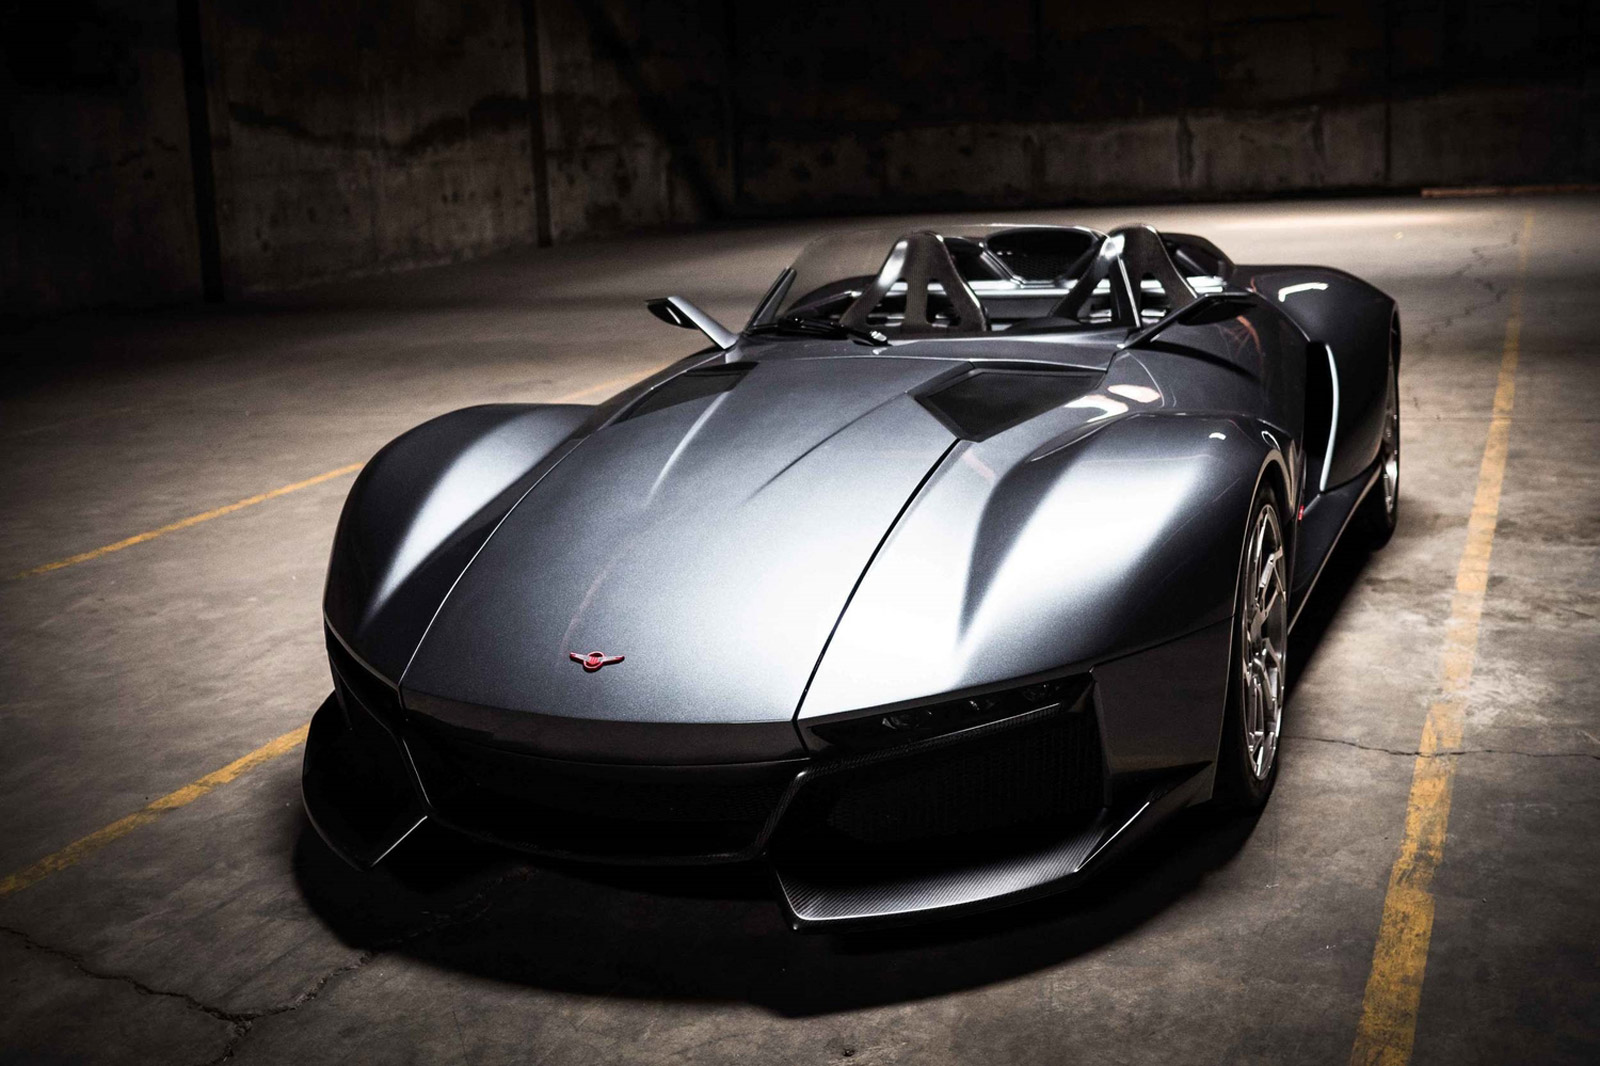 2015 Rezvani Beast, 2015 Ford Shelby Super Snake, 2016 Mercedes-Benz GLC: This Week's Top Photos